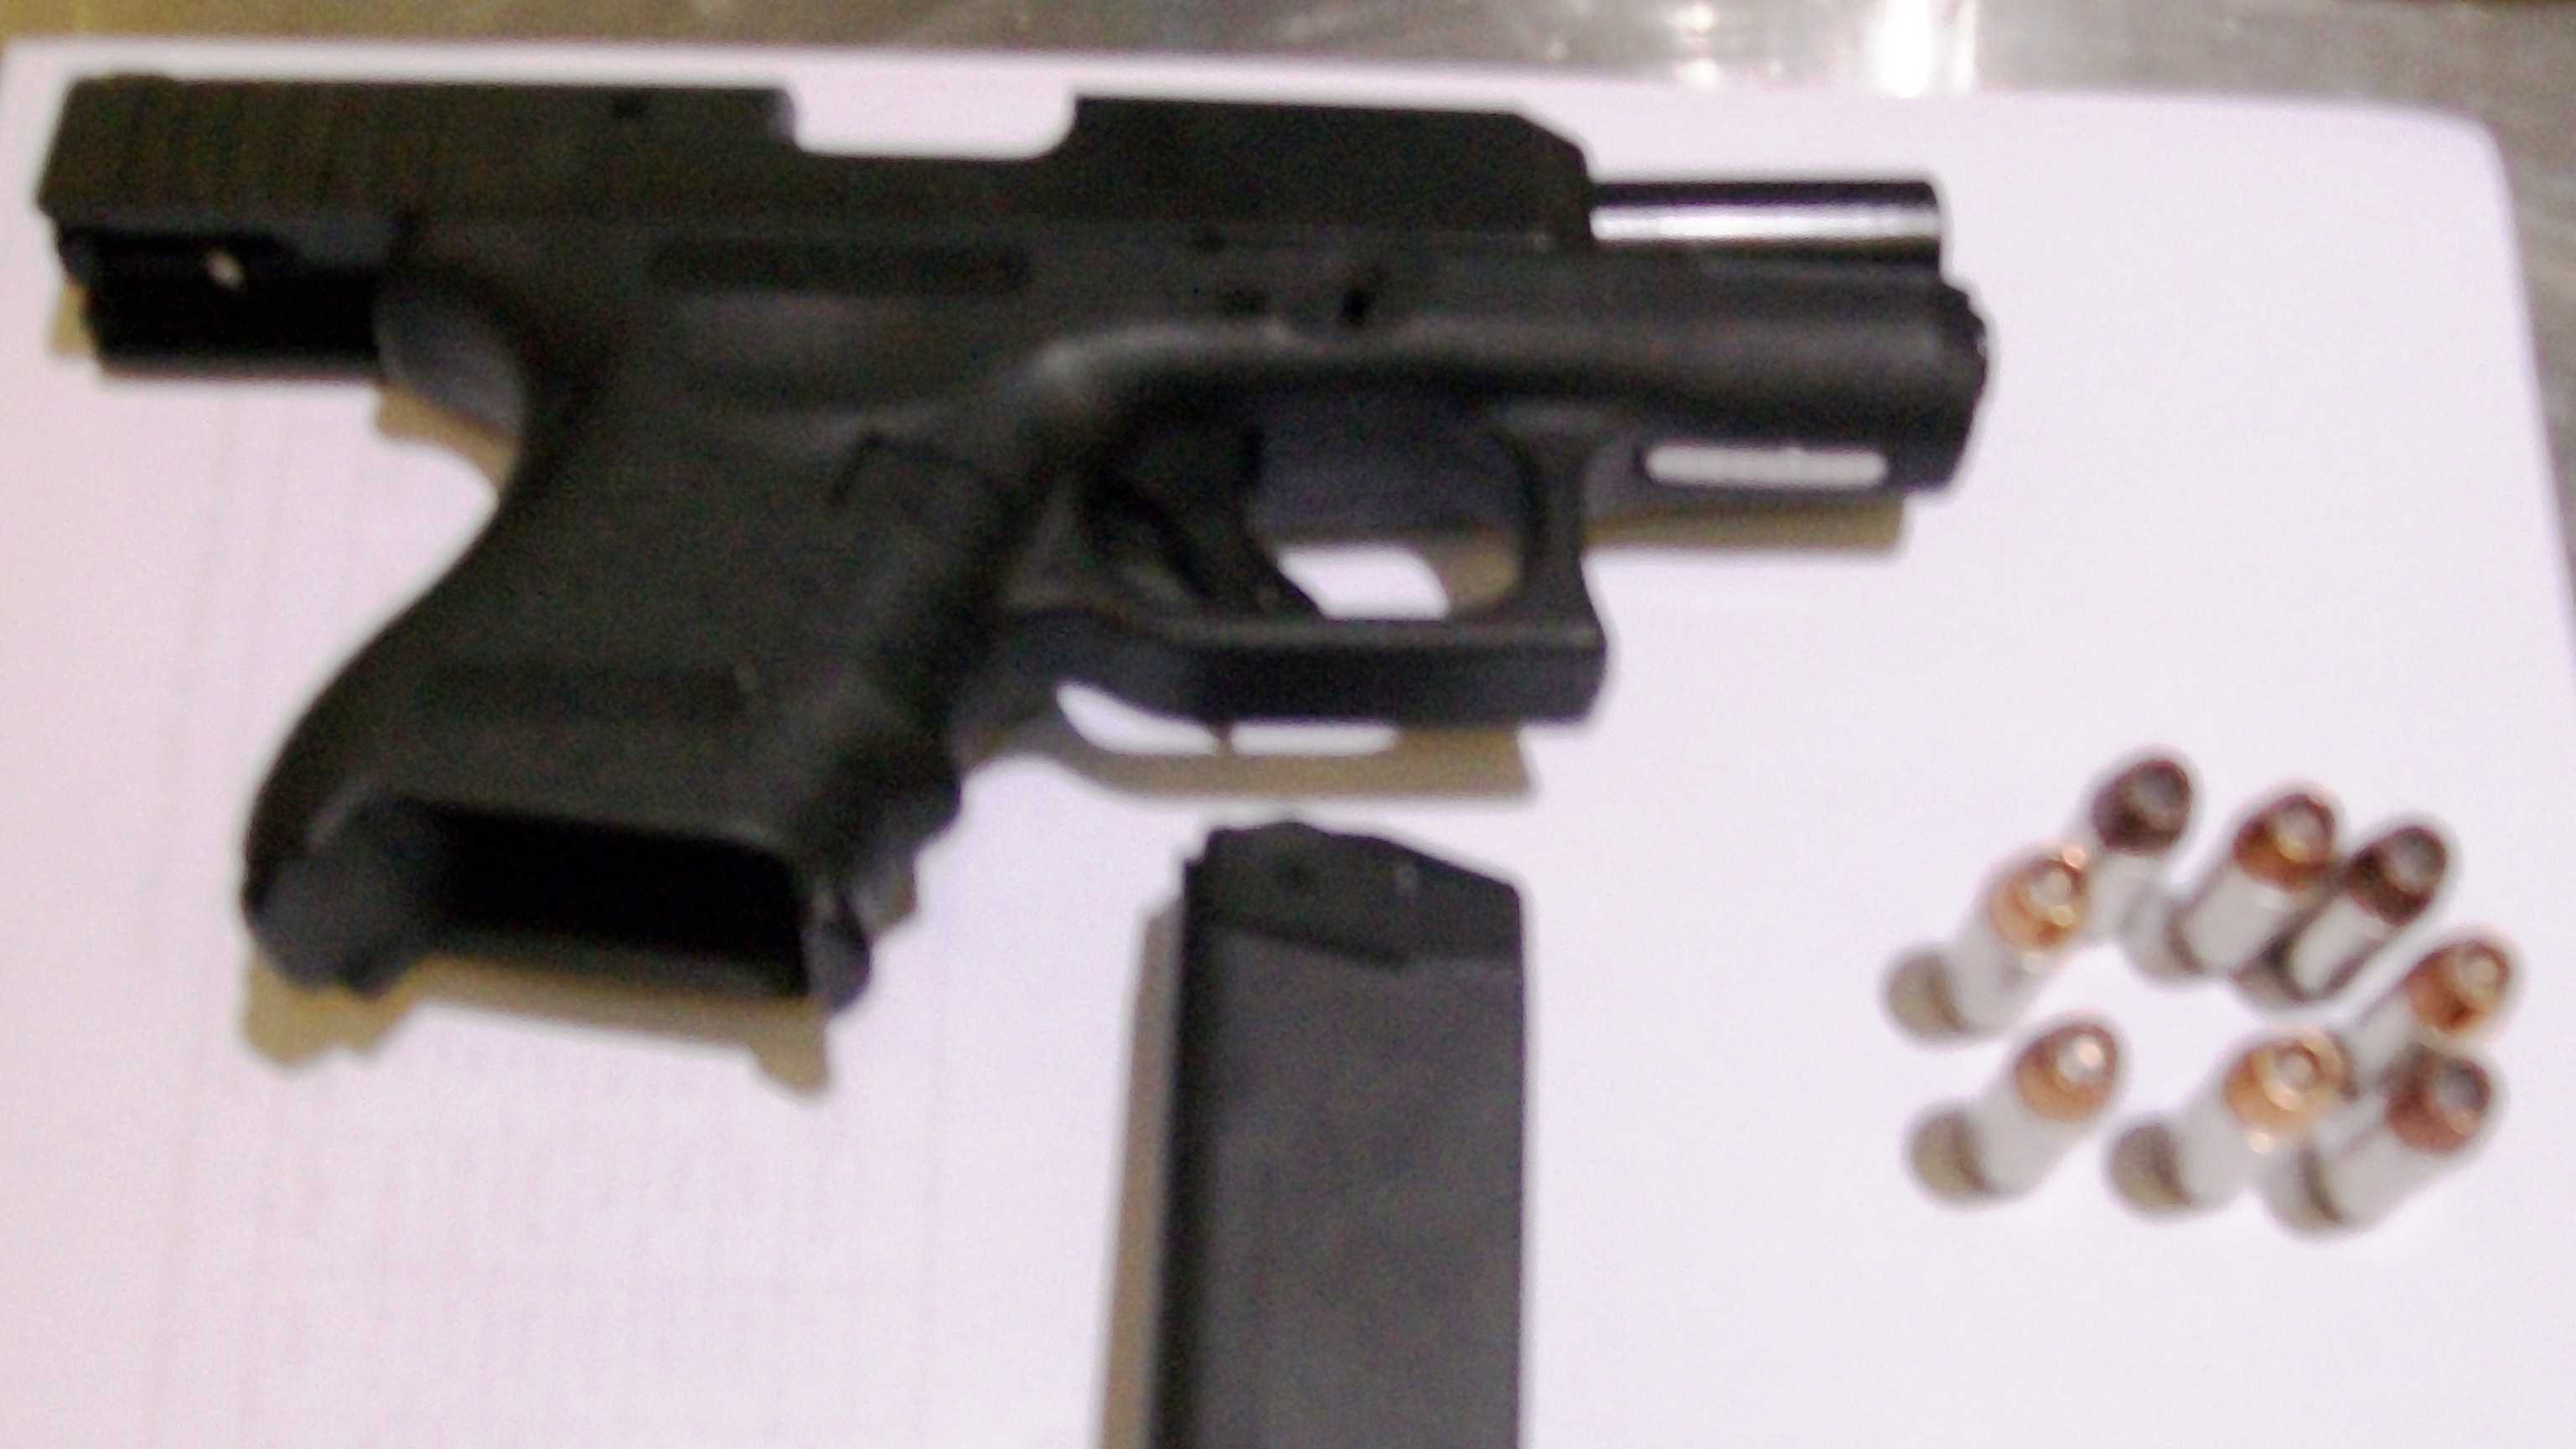 This .40 caliber semi-automatic handgun was detected in a traveler's carry-on bag at BWI Airport yesterday (September 29th). The man was arrested on a state weapons charge.